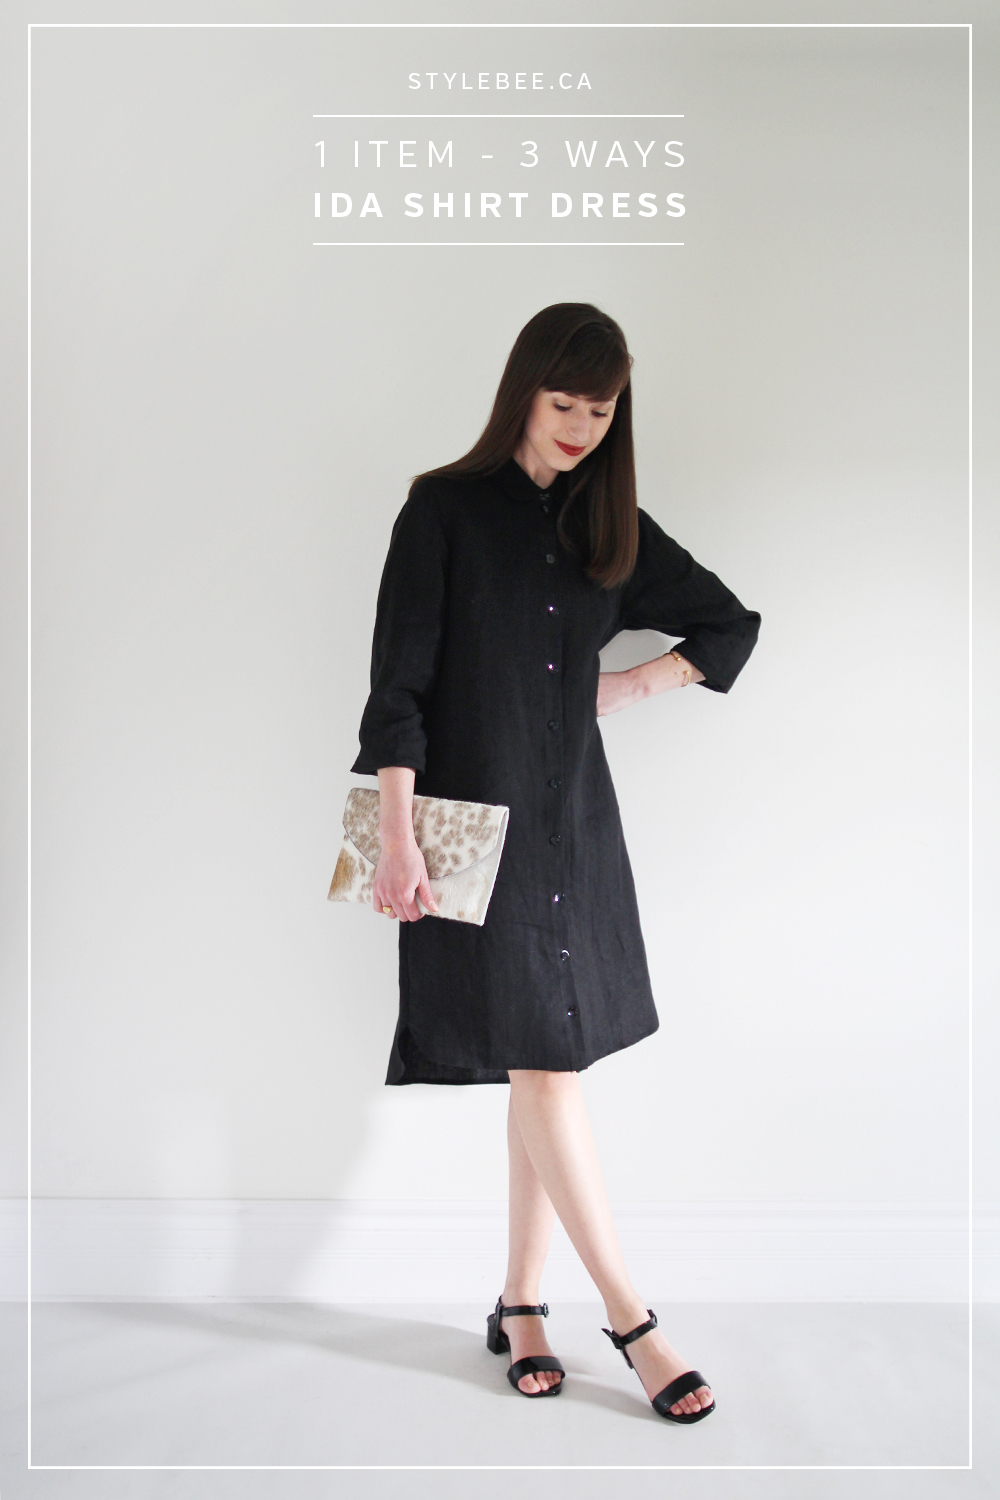 Style Bee - 1 Item - 3 Ways - Ida Shirt Dress